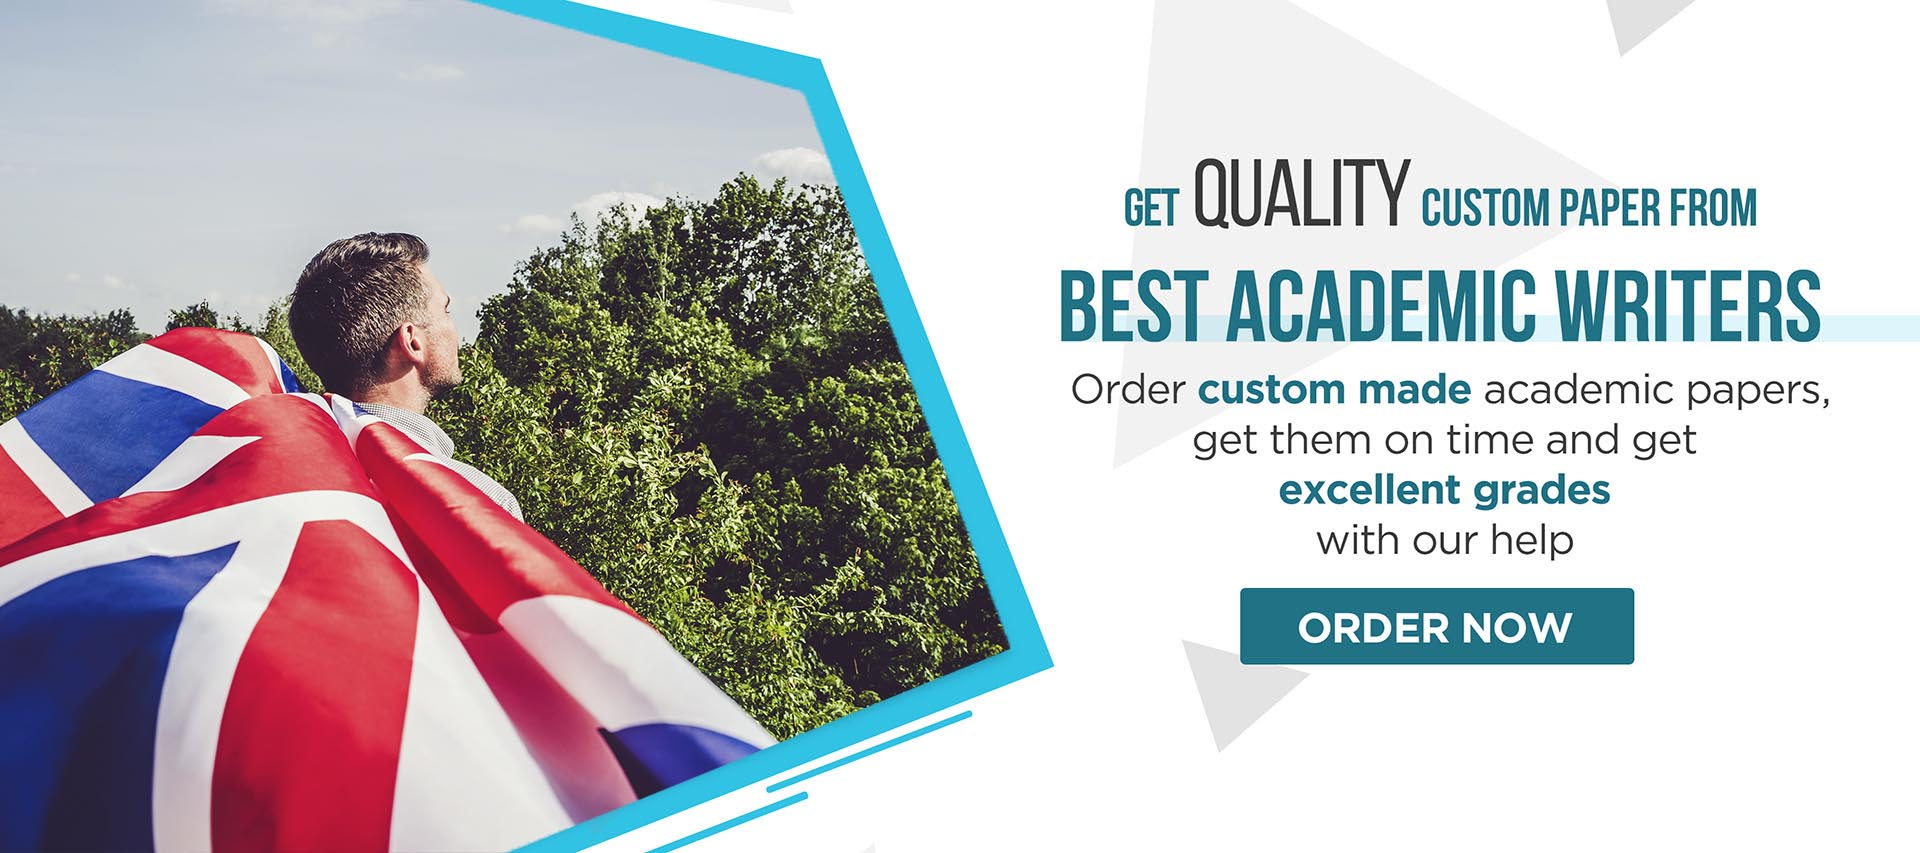 Order custom made academic papers, get them on time and get exellent grades with our help.